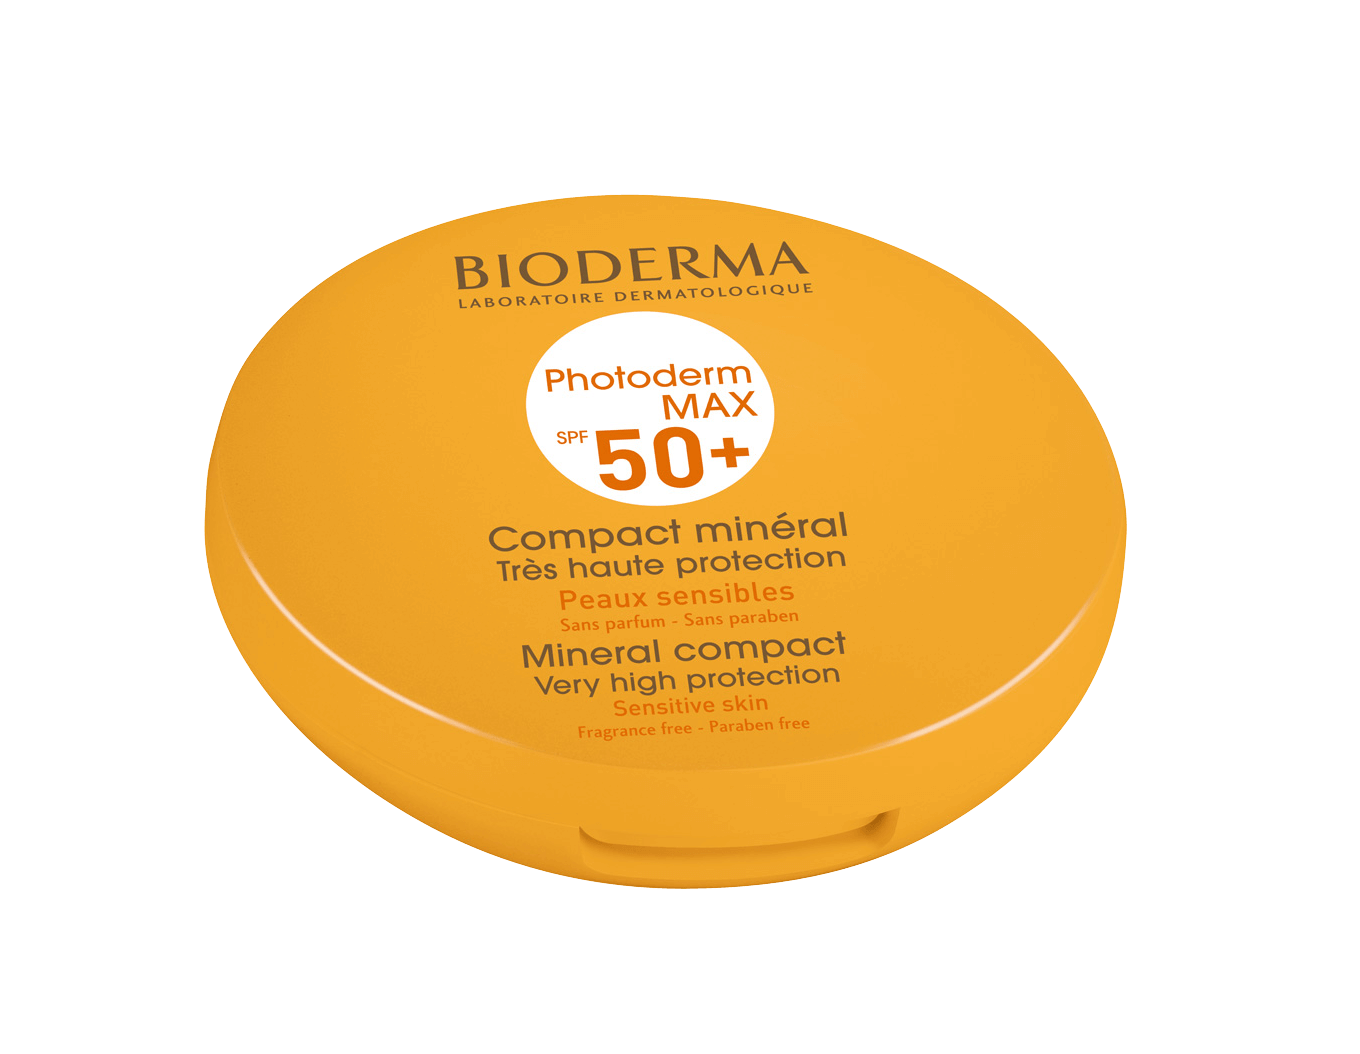 BIODERMA PHOTODERM MAX COMPACT SPF50+ CLAIRE 10g